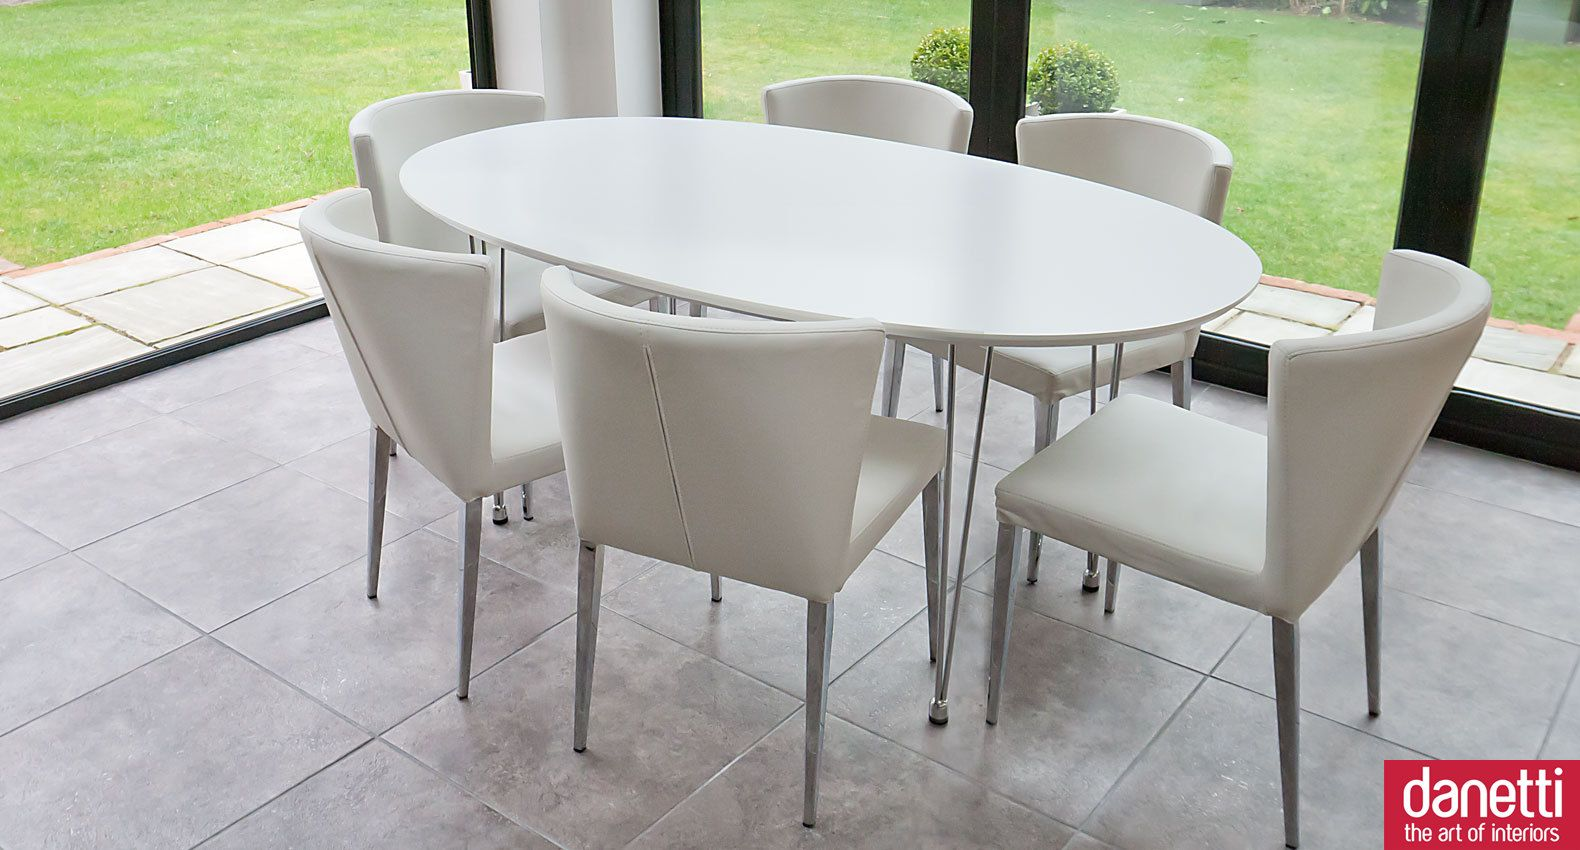 A Modern Curvy Dining Set Which Is New And Exclusive To Danetti The Sleek And Contemporary Satin Finished E Dining Sets Modern Kitchen Dining Sets Dining Set